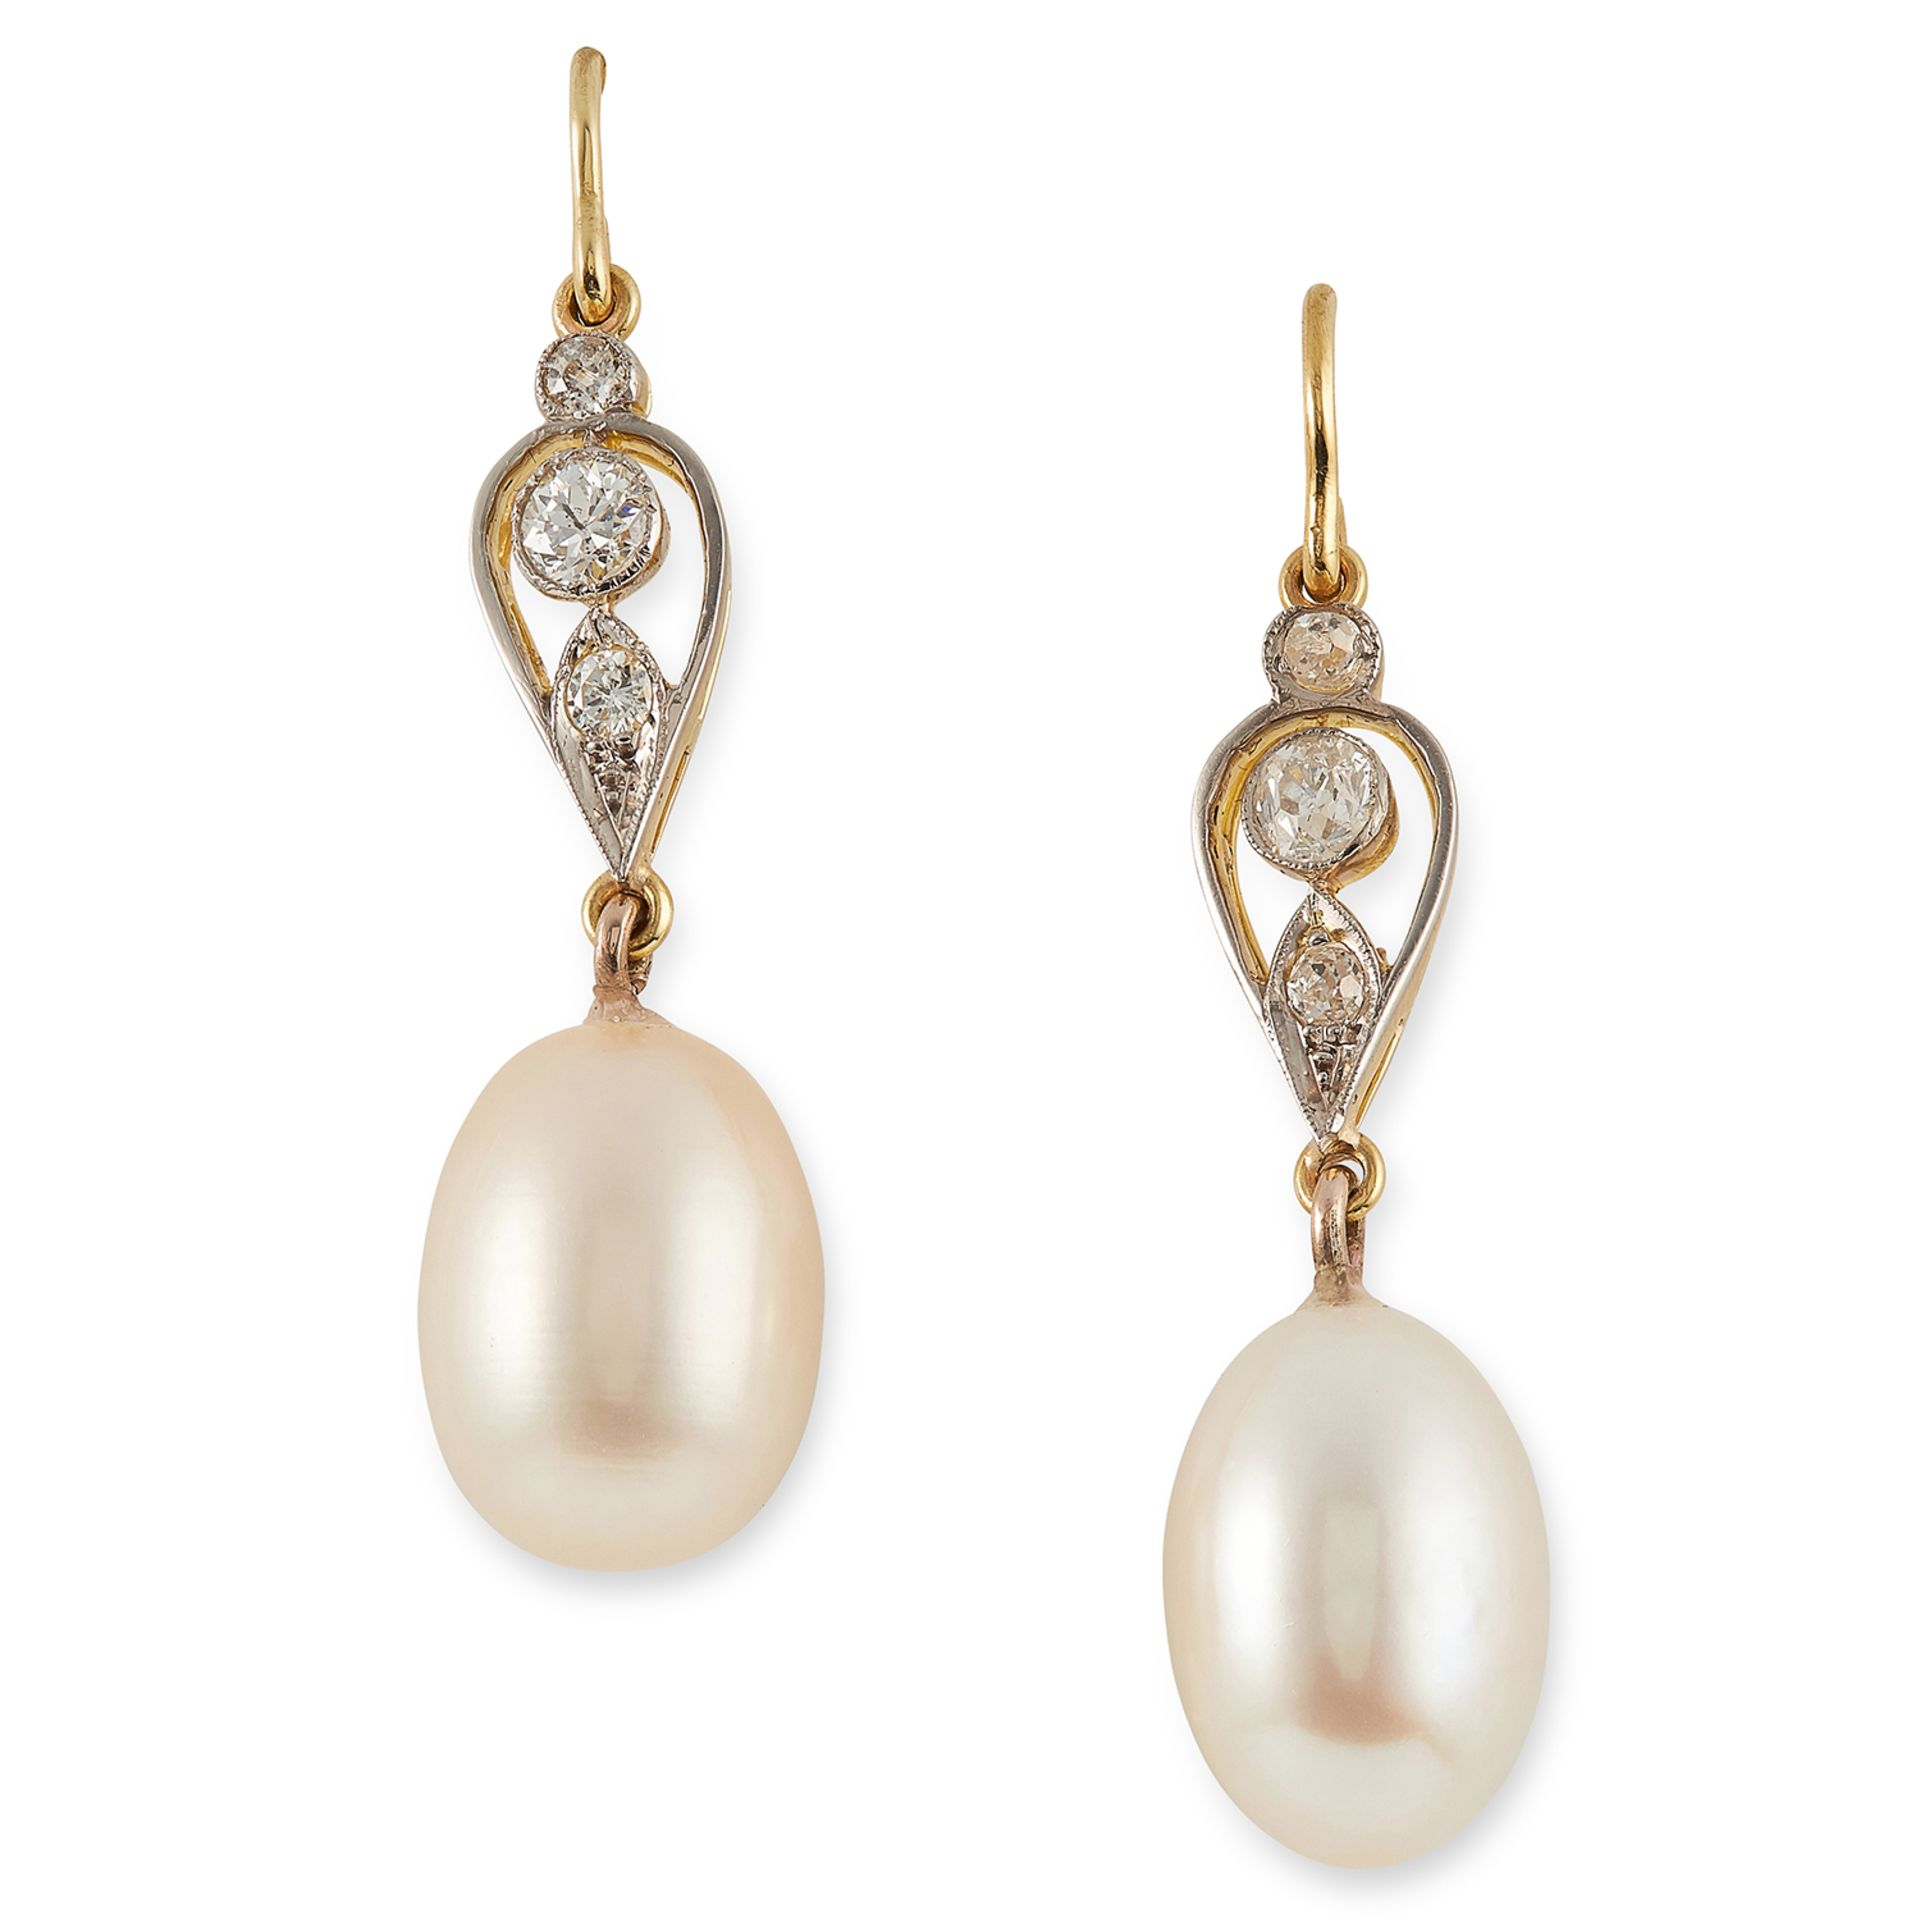 PEARL AND DIAMOND EARRINGS set with round cut diamonds and pearls, 4cm, 6g.